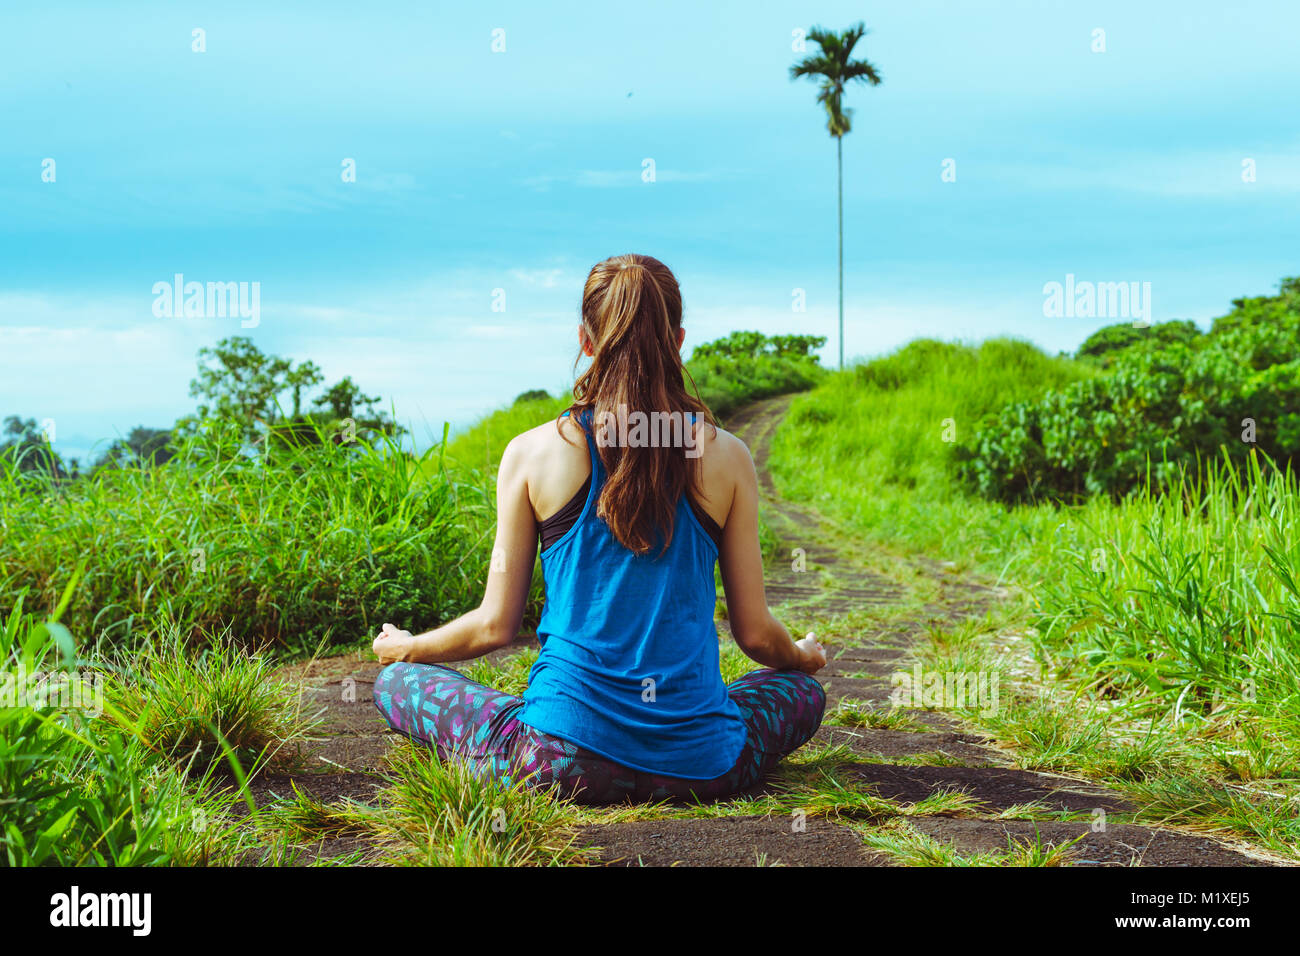 Woman meditates in yoga asana Padmasana - Stock Image